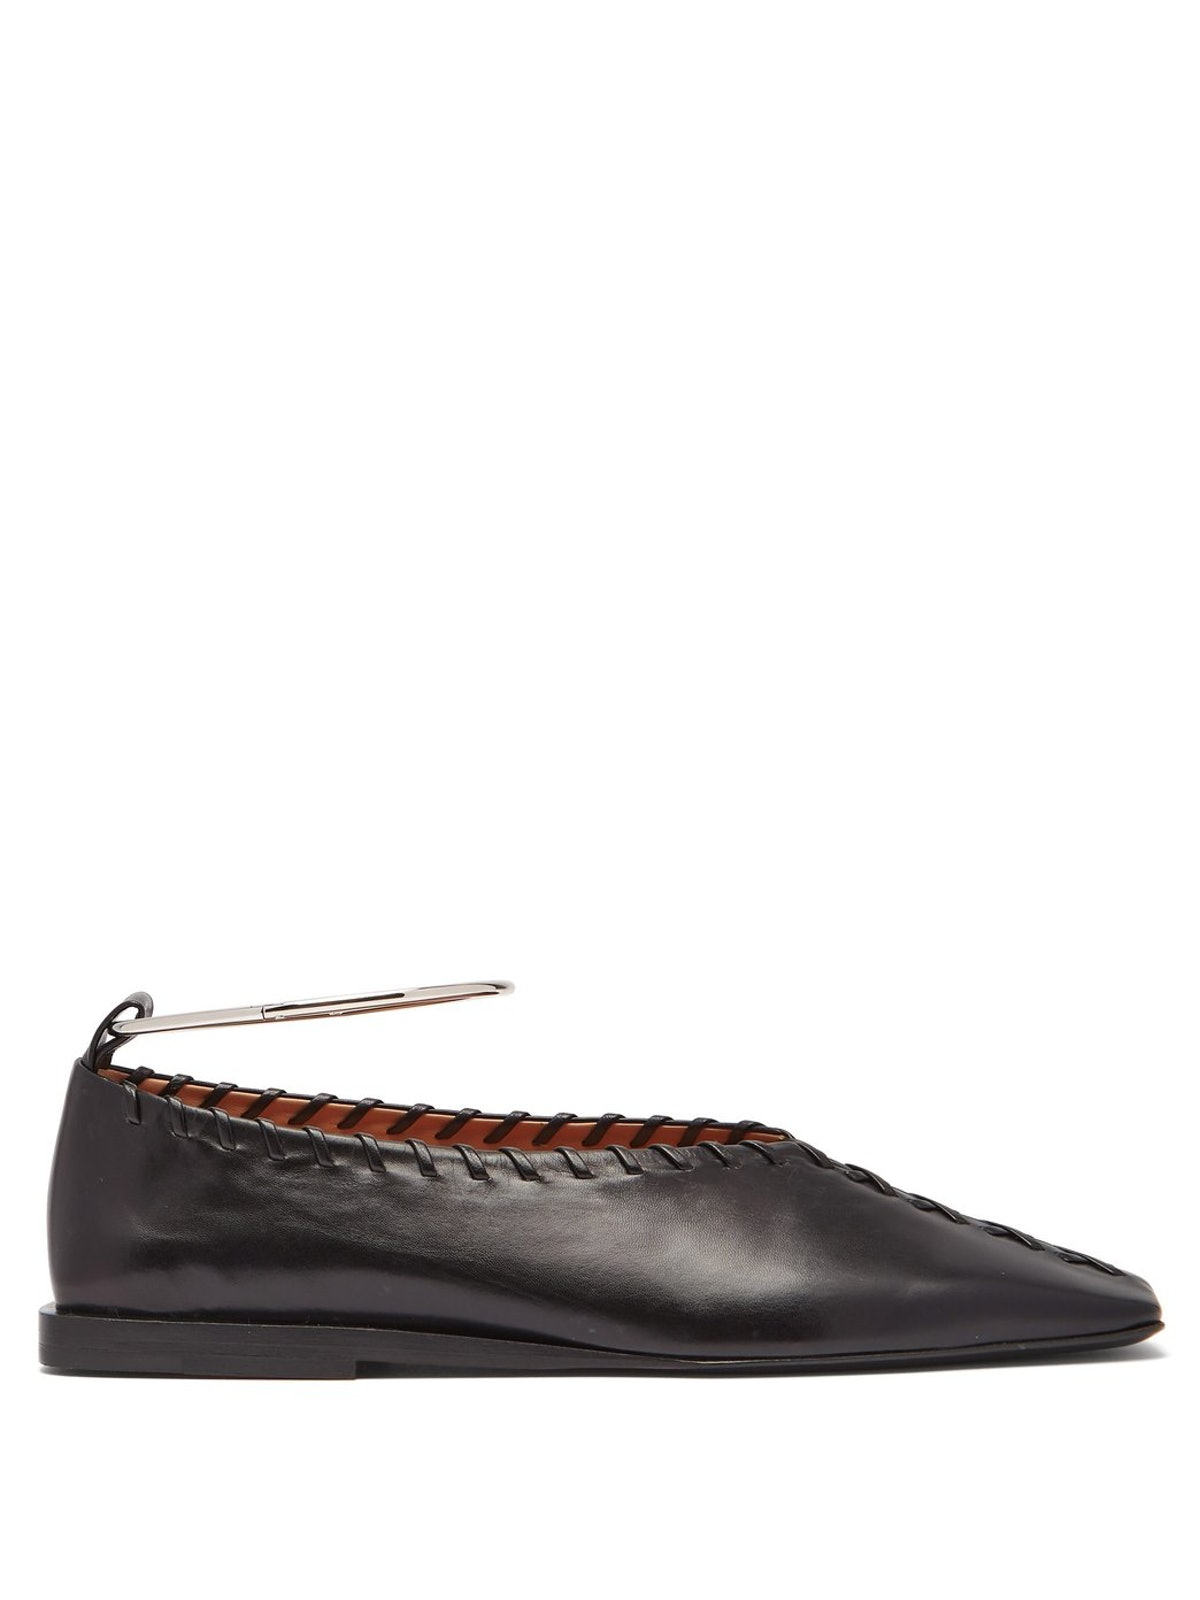 Whipstiched Leather Ballet Flats